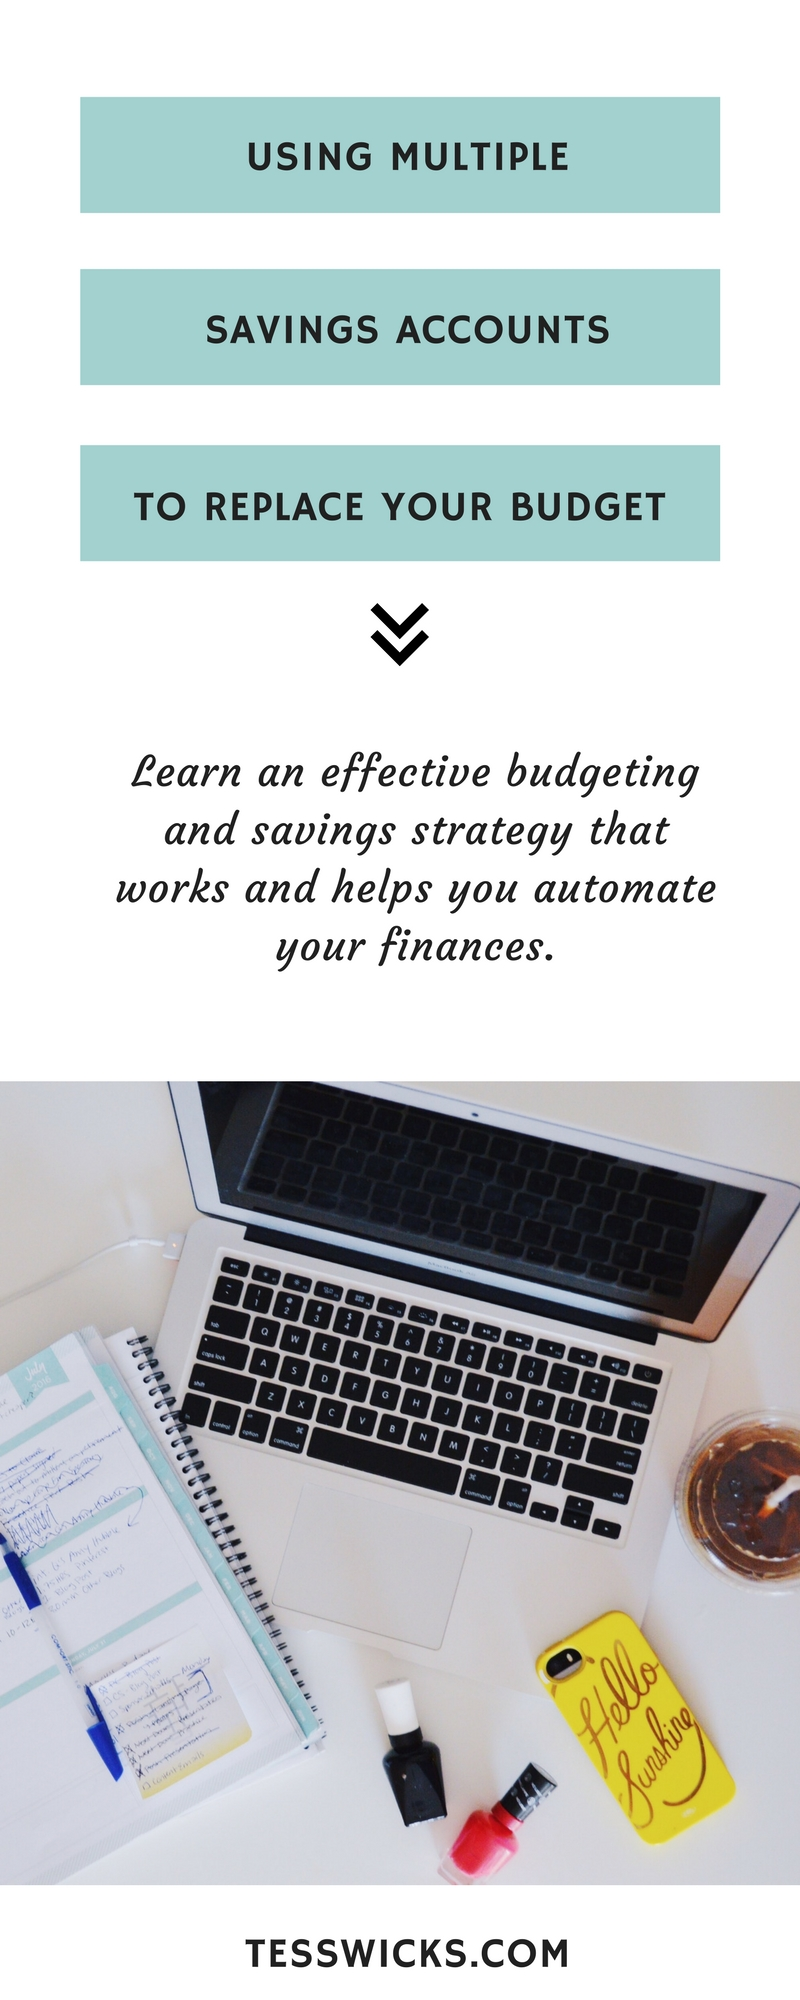 Learn how to set up and utilize multiple savings accounts to improve your budgeting and savings strategy.